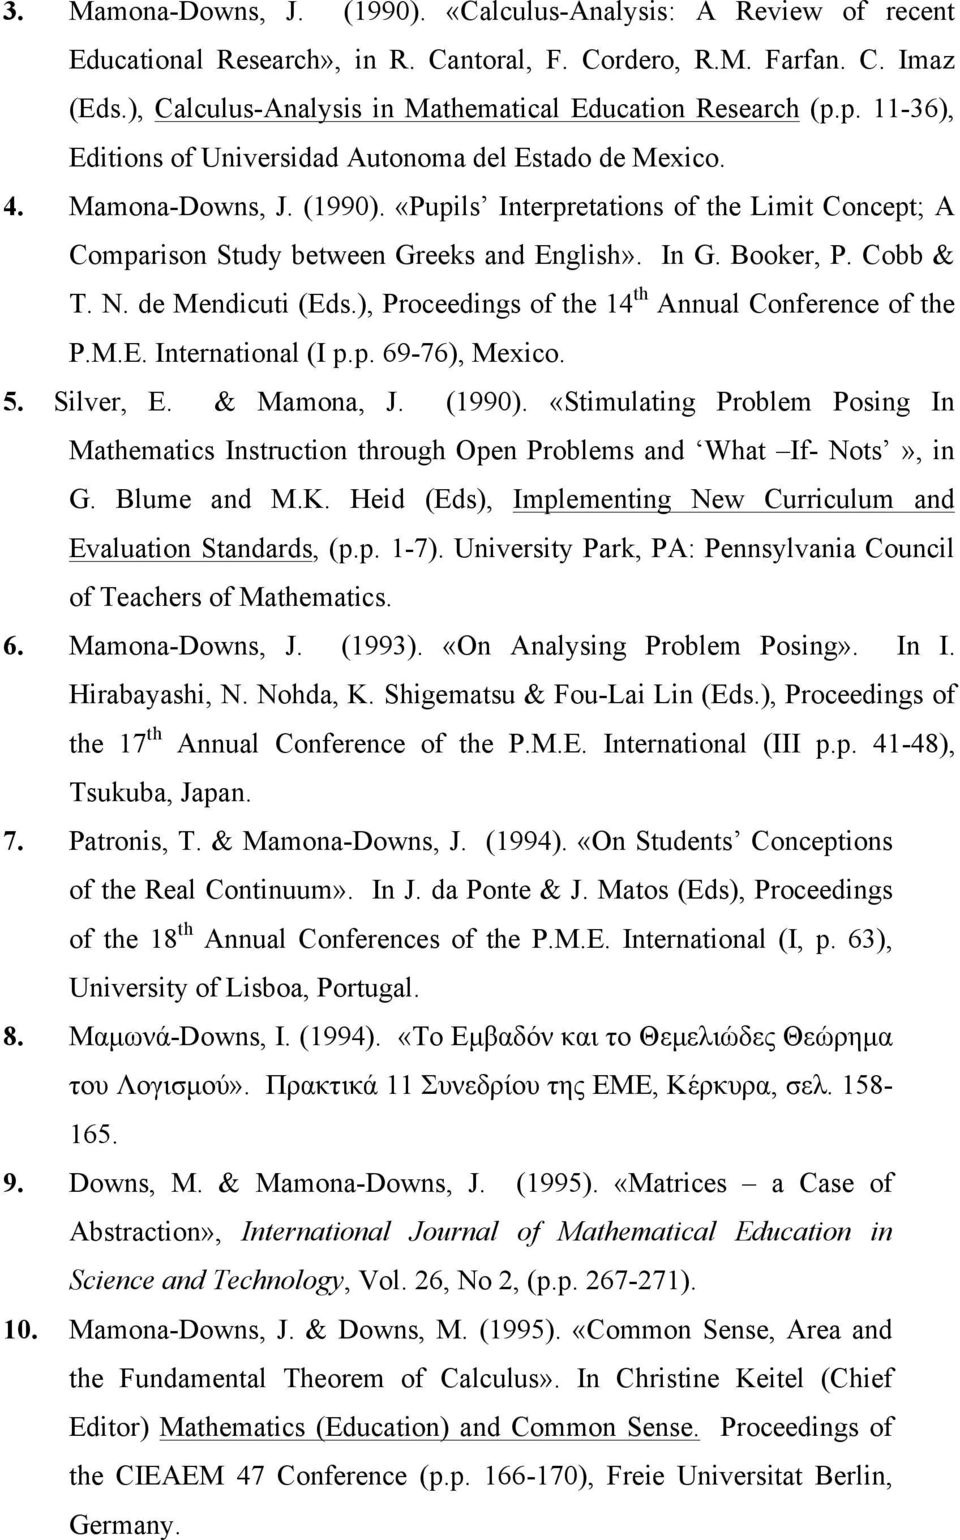 «Pupils Interpretations of the Limit Concept; A Comparison Study between Greeks and English». In G. Booker, P. Cobb & T. N. de Mendicuti (Eds.), Proceedings of the 14 th Annual Conference of the P.M.E. International (I p.